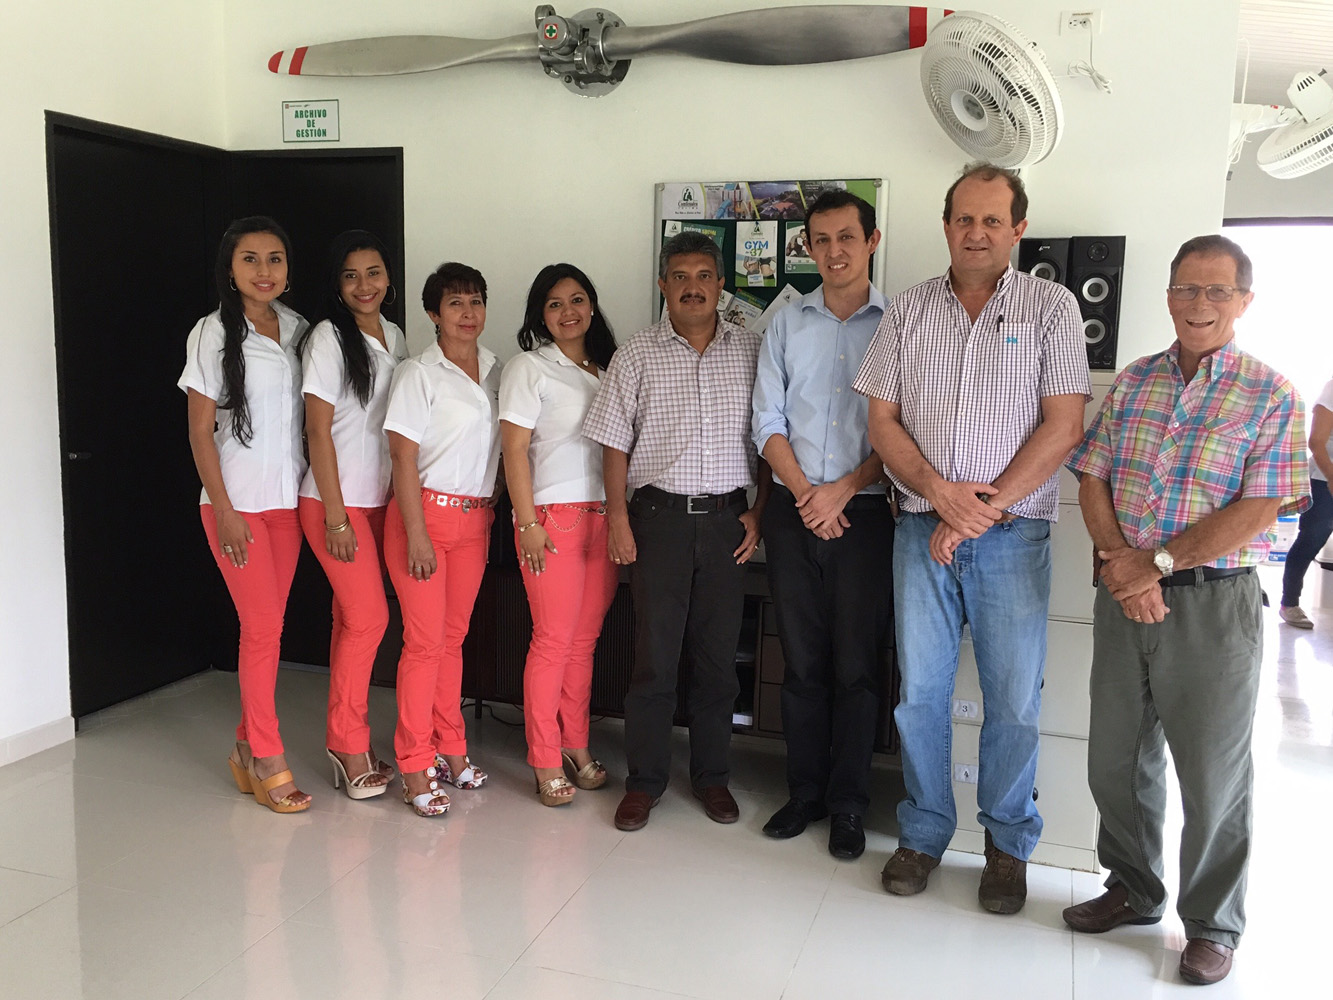 Sanidad Vegetal administrative personnel at the main office in Ibagué with General Manager Andres Klotz second from right and retired Chief Pilot Billy Griebling far right